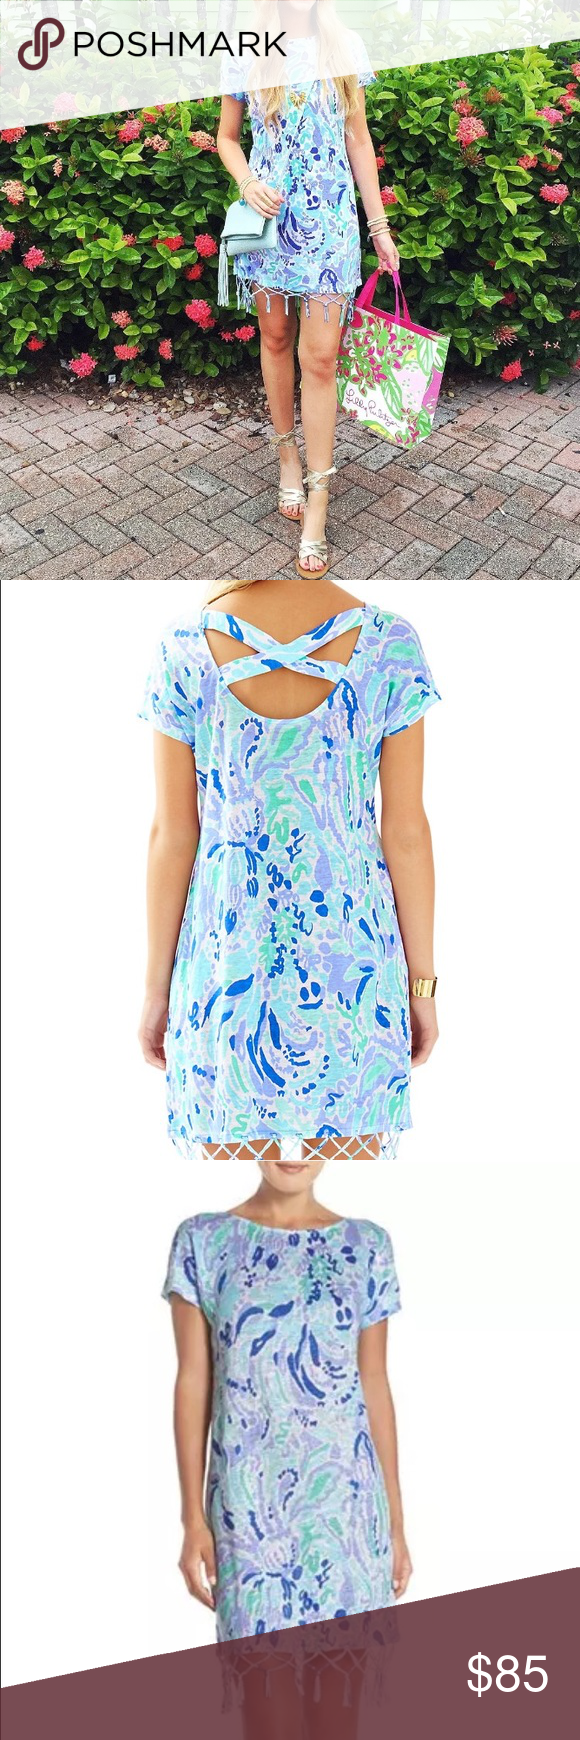 BNWT Lilly Pulitzer Beachcomber dress with fringe Brand new with tags. Retails $138 Lilly Pulitzer Dresses Mini